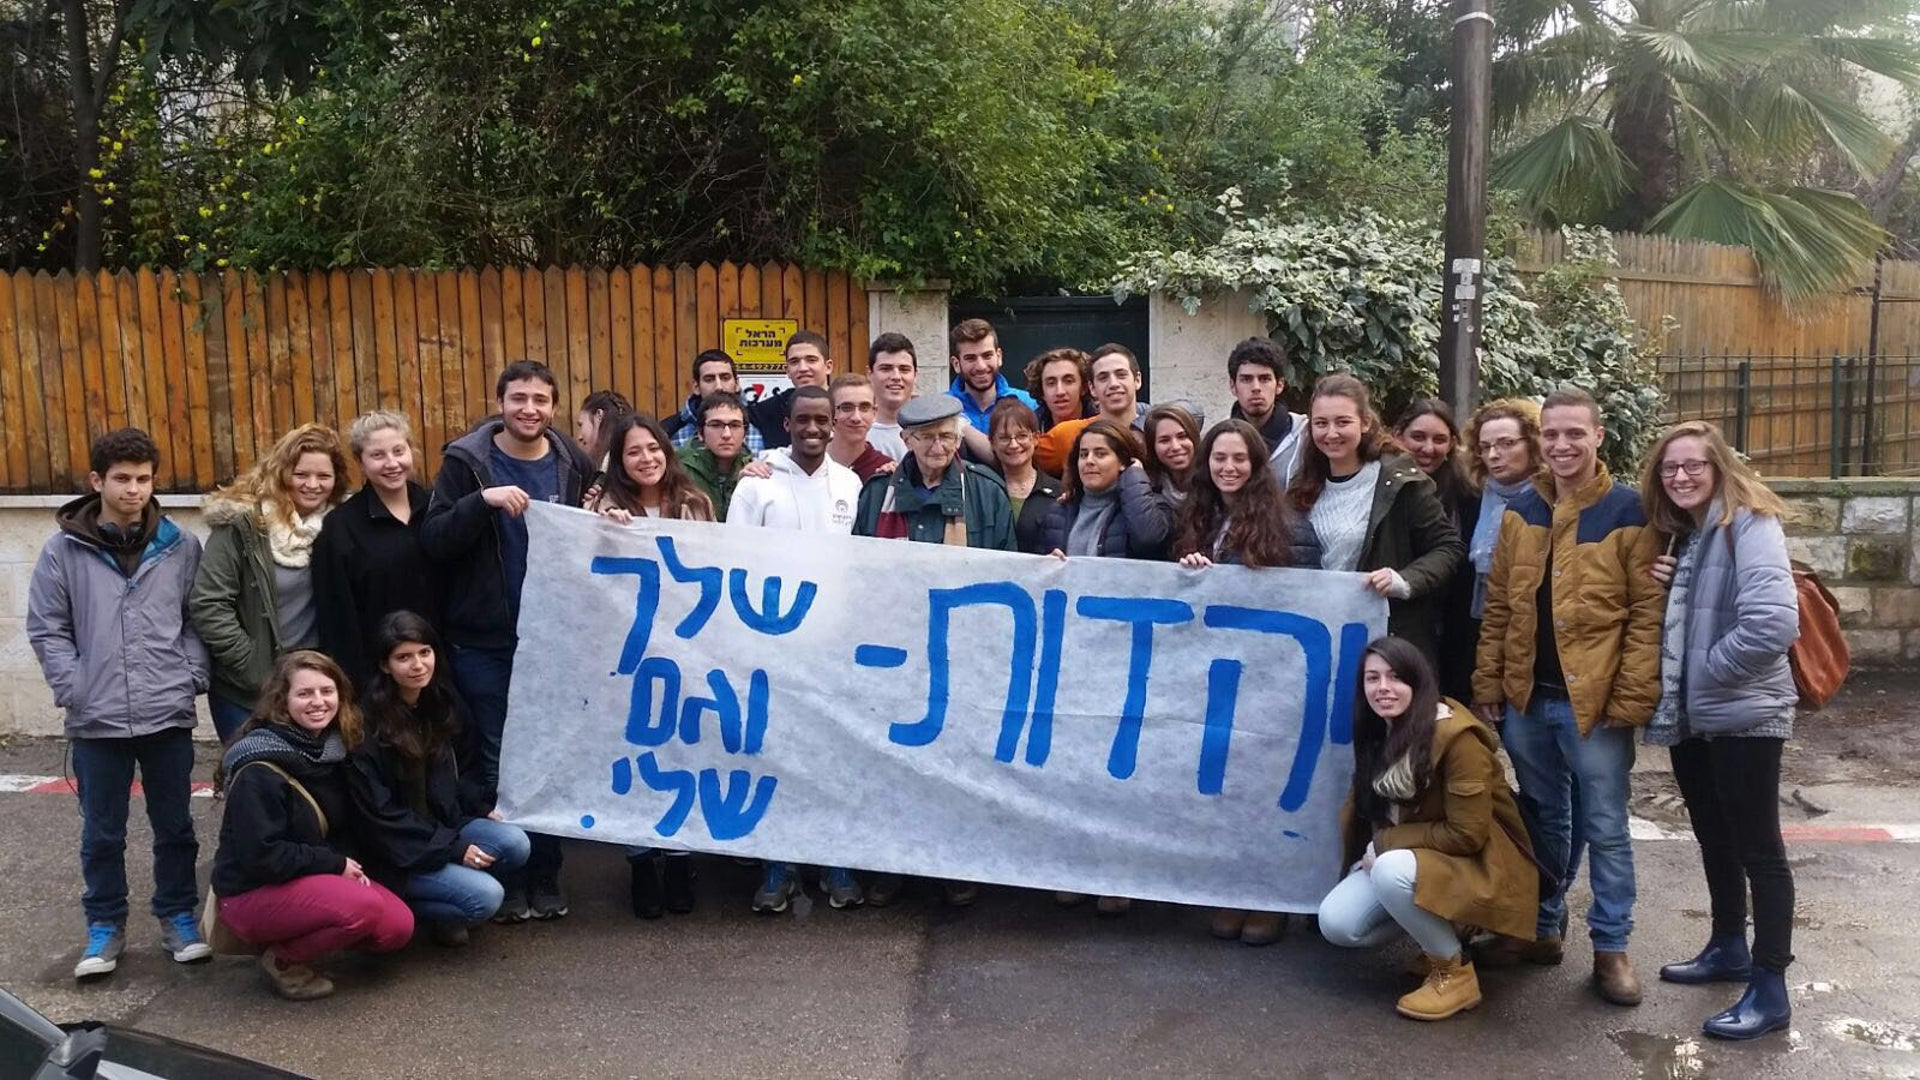 Cadets from the 'Mekhina Hayerushalmit' (the Jerusalem Pre-Military Leadership Program) hold up a sign that reads 'Your Judaism is My Judaism.'